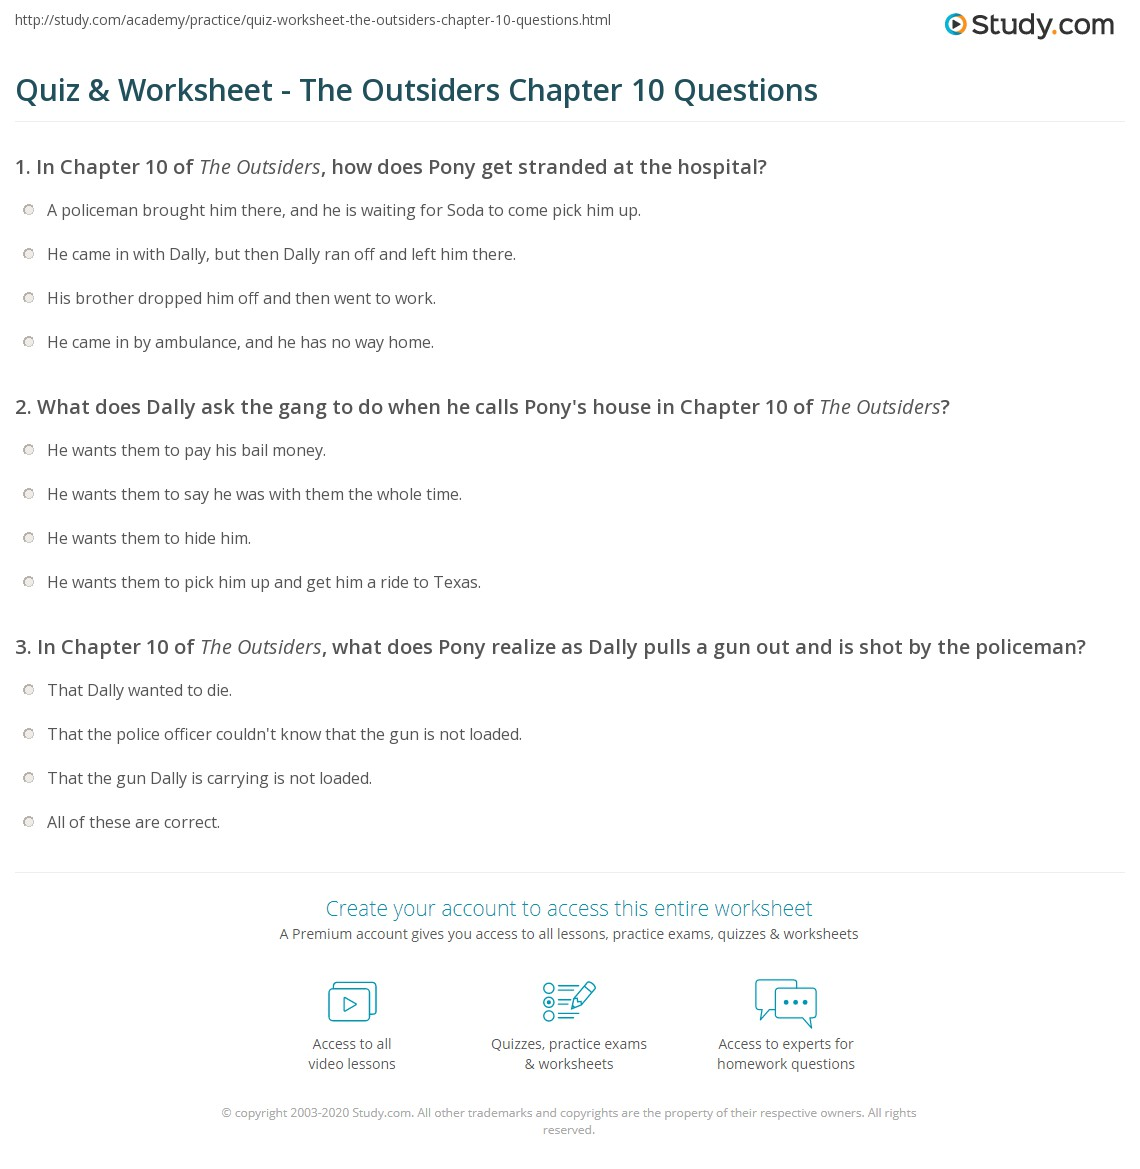 the outsiders chapter 10 pdf